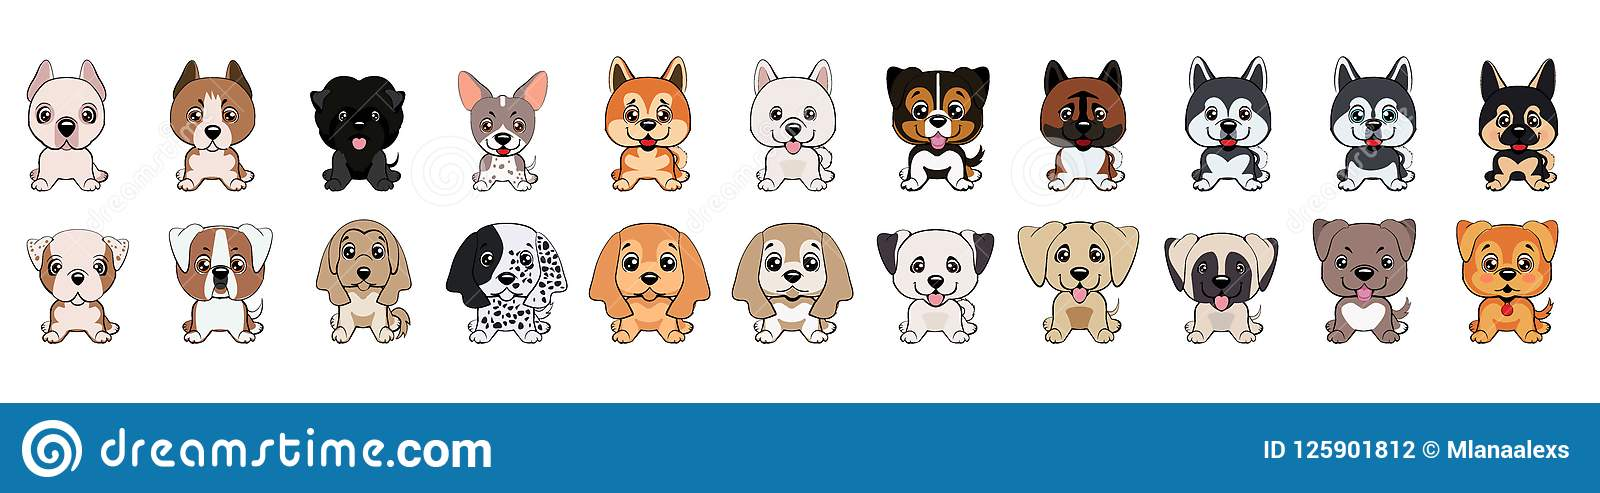 A Set Of Dogs Of Different Breeds Stock Vector Illustration Of